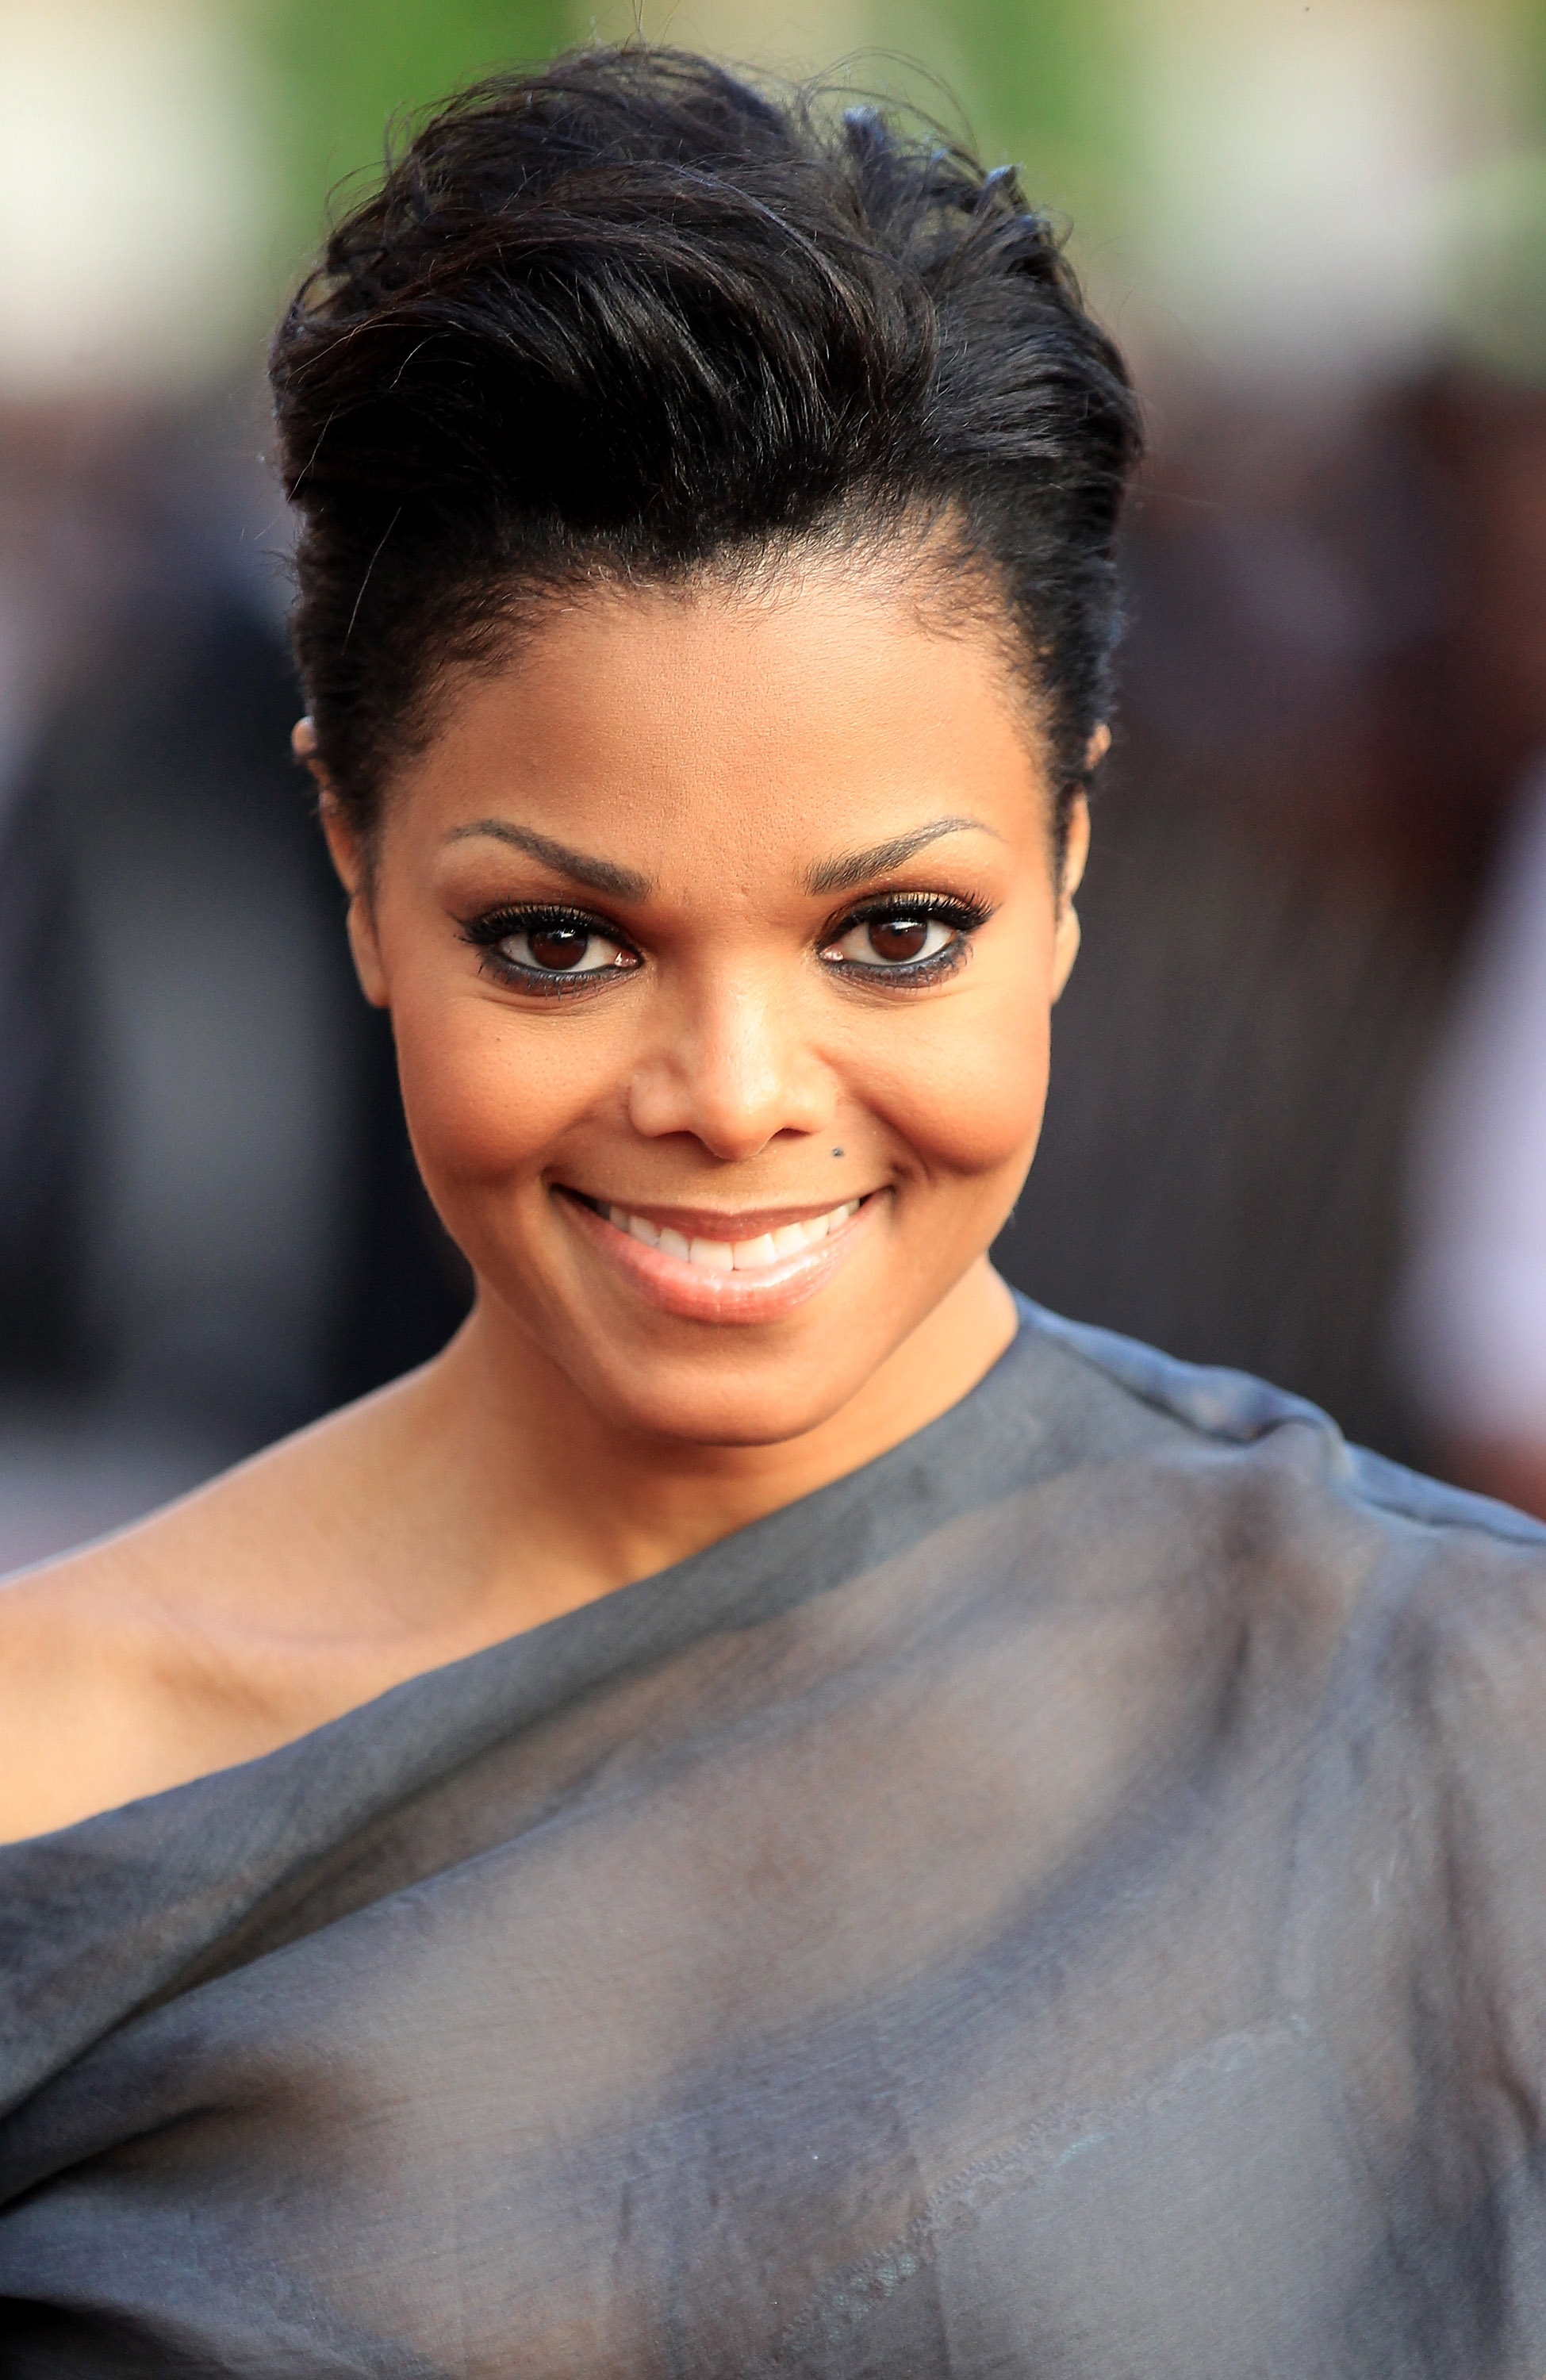 Outstanding 45 Black Hairstyles For Short Hair Short Haircuts For Black Women Short Hairstyles Gunalazisus